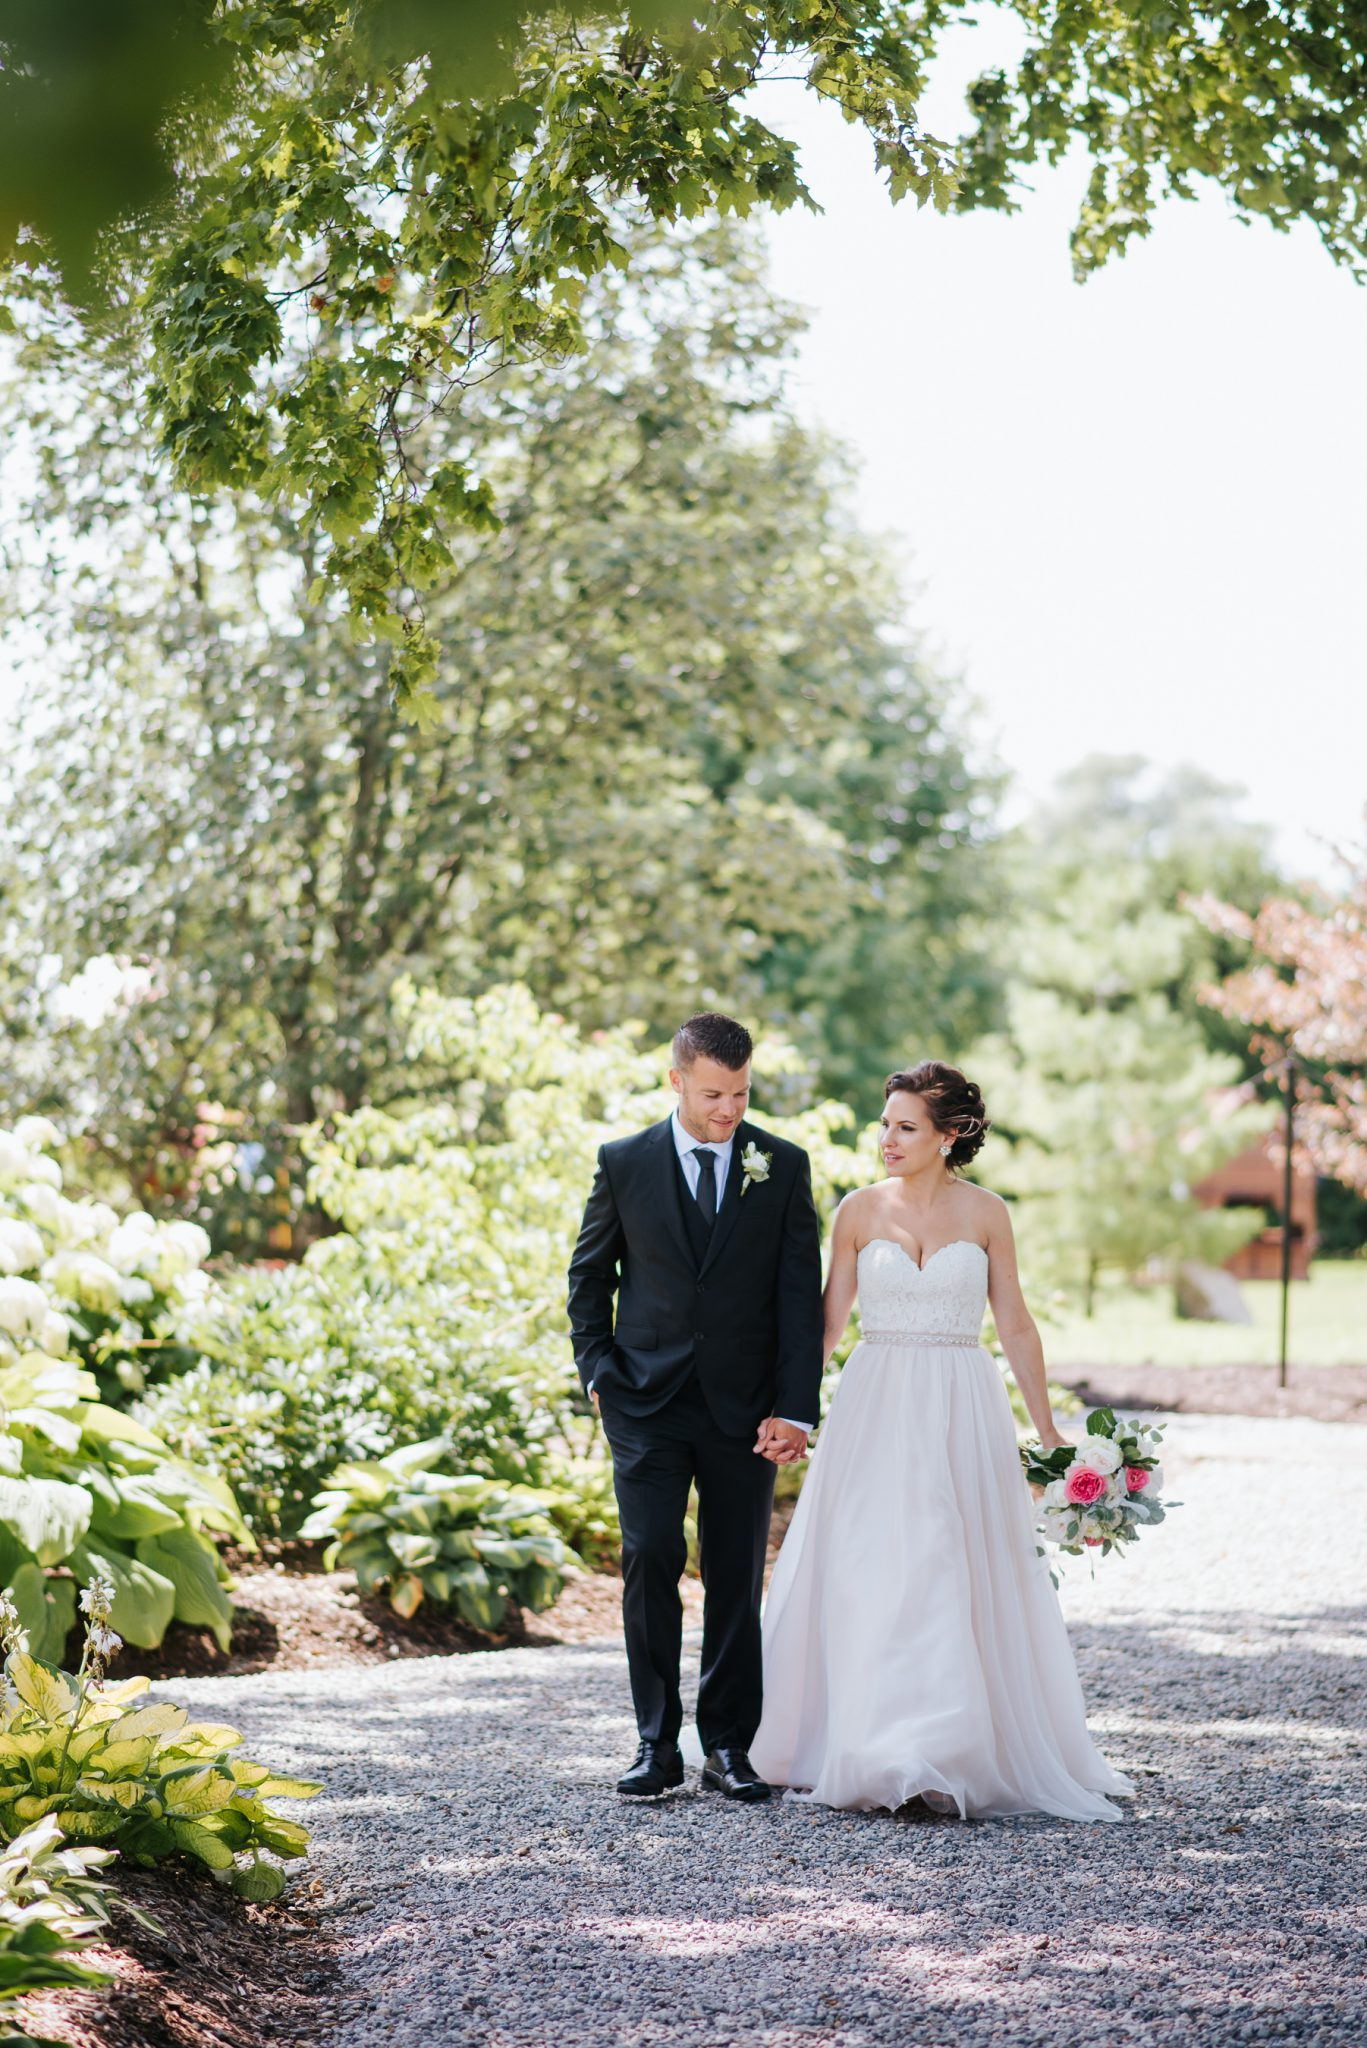 Bloomfield Gardens Wedding - bride and groom on garden path